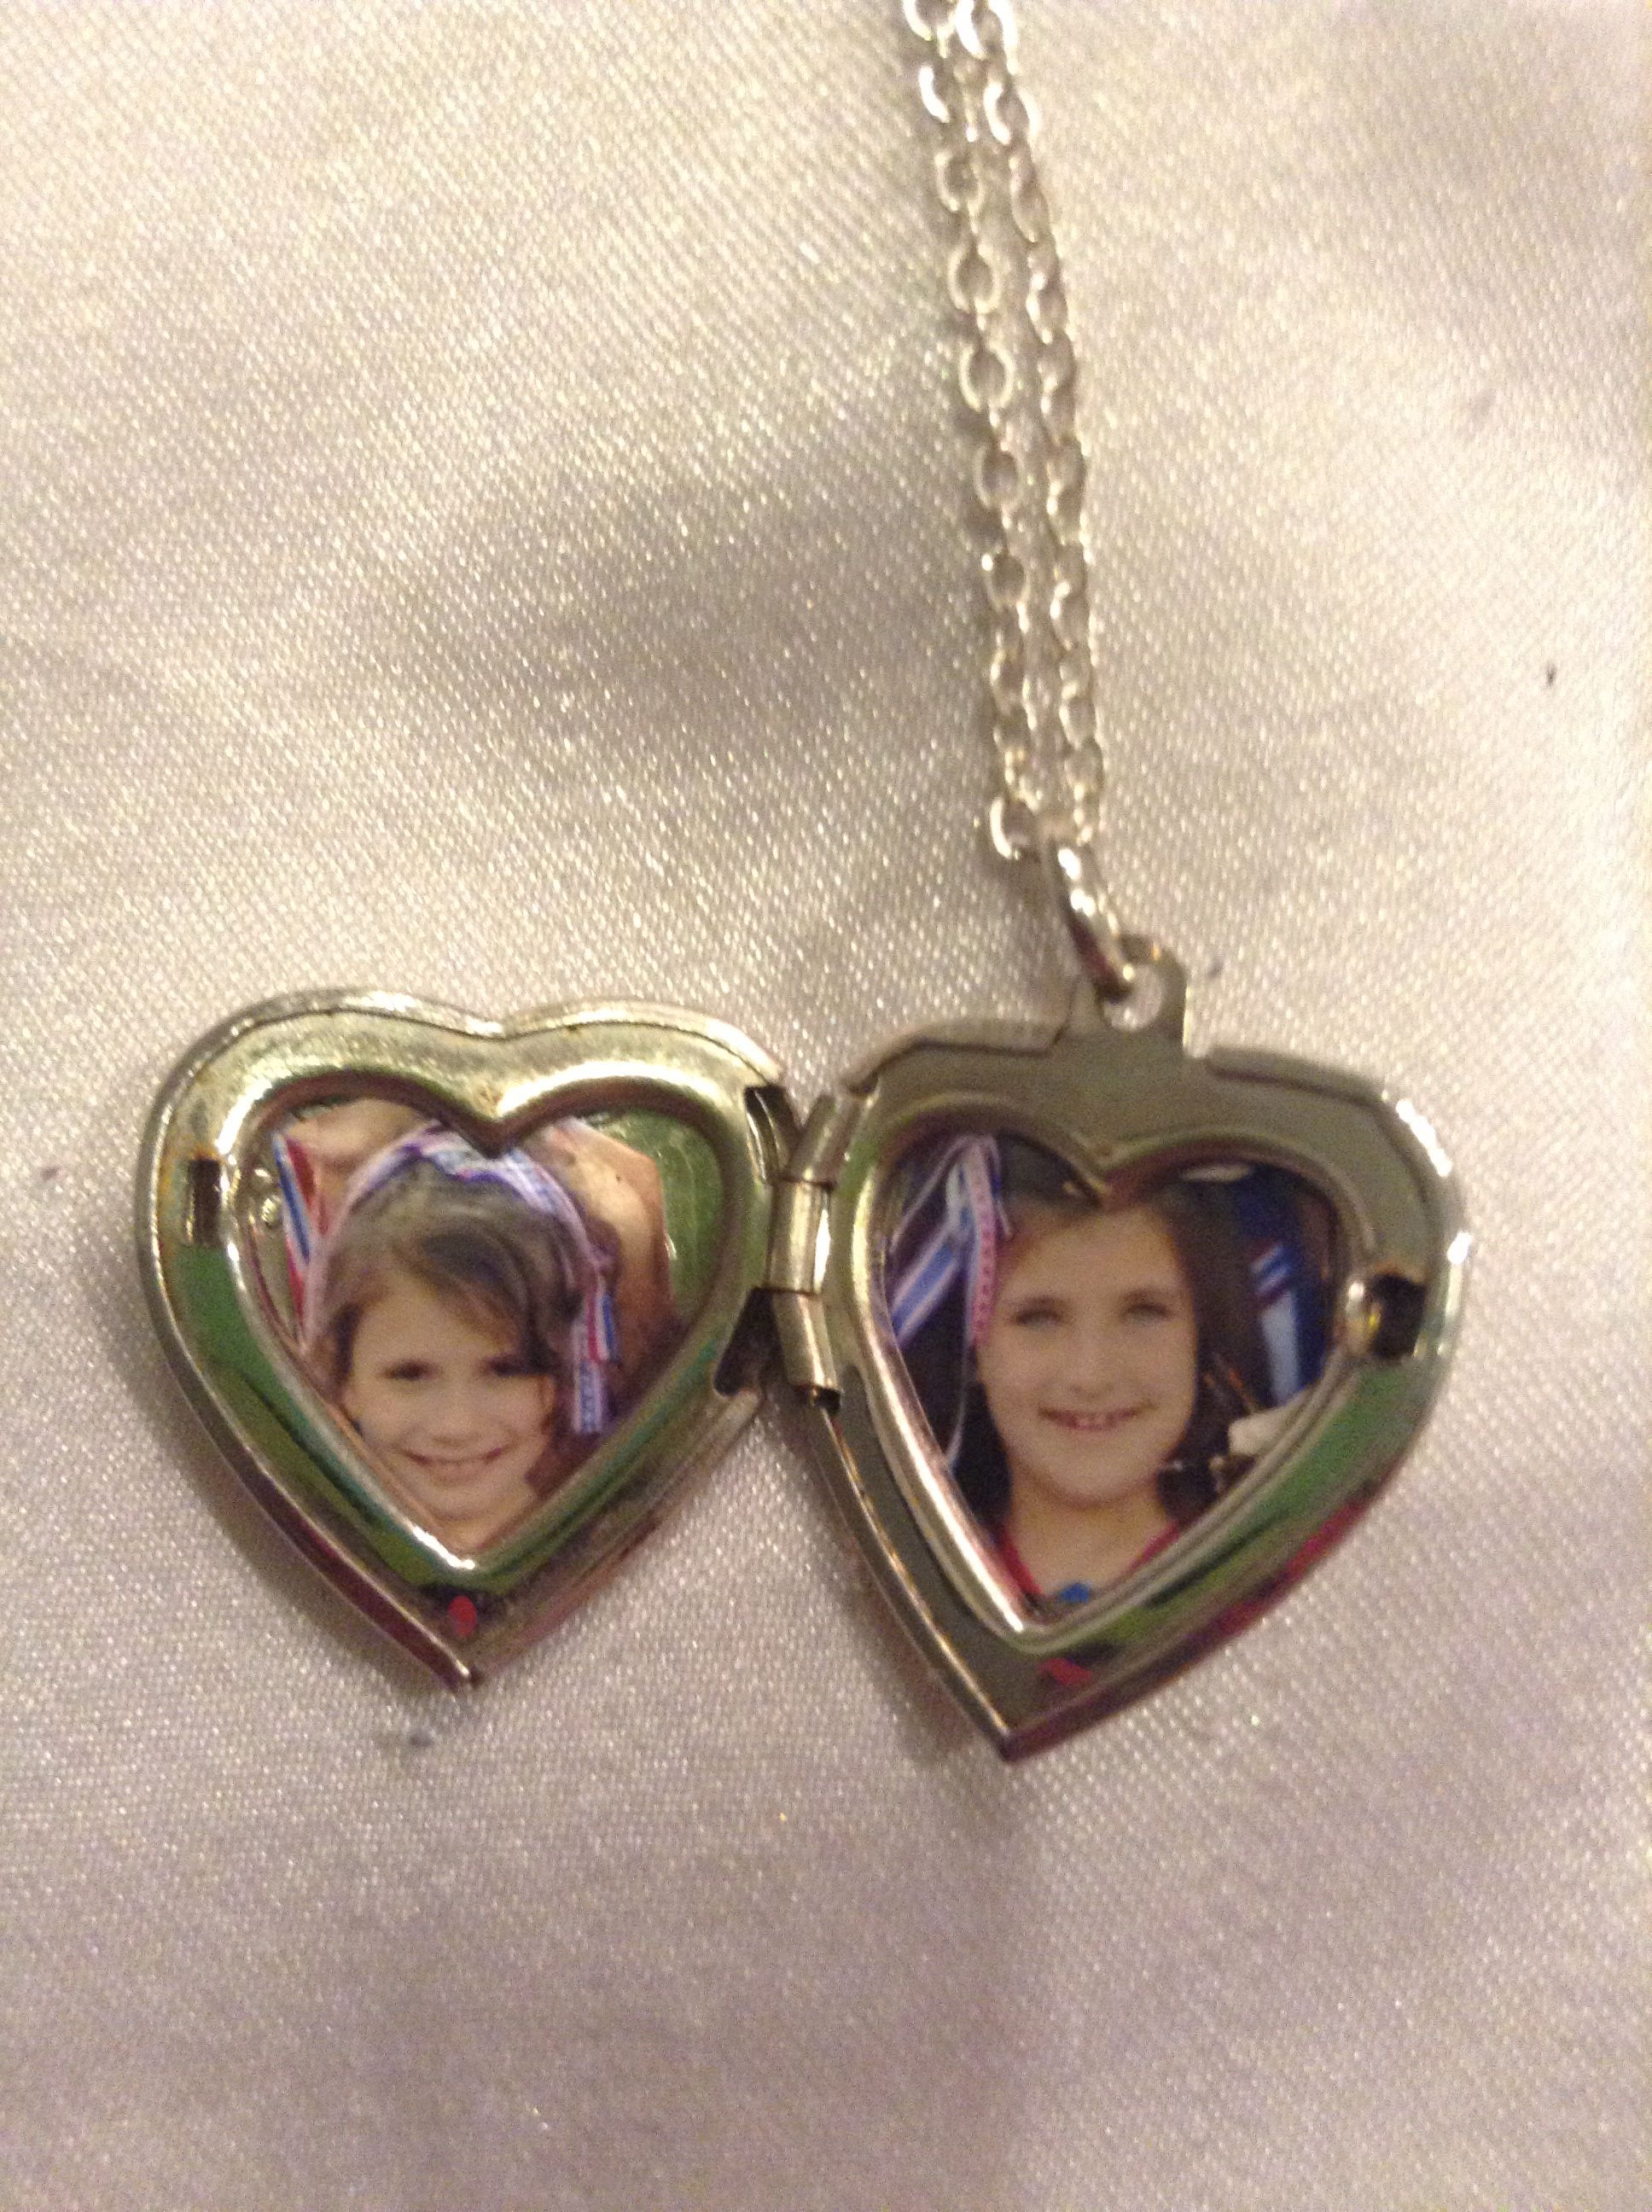 This Is A Old Locket All I Did Was Put Me And My Friends Pictures In It For Christmas Locket Friend Pictures Chain Necklace